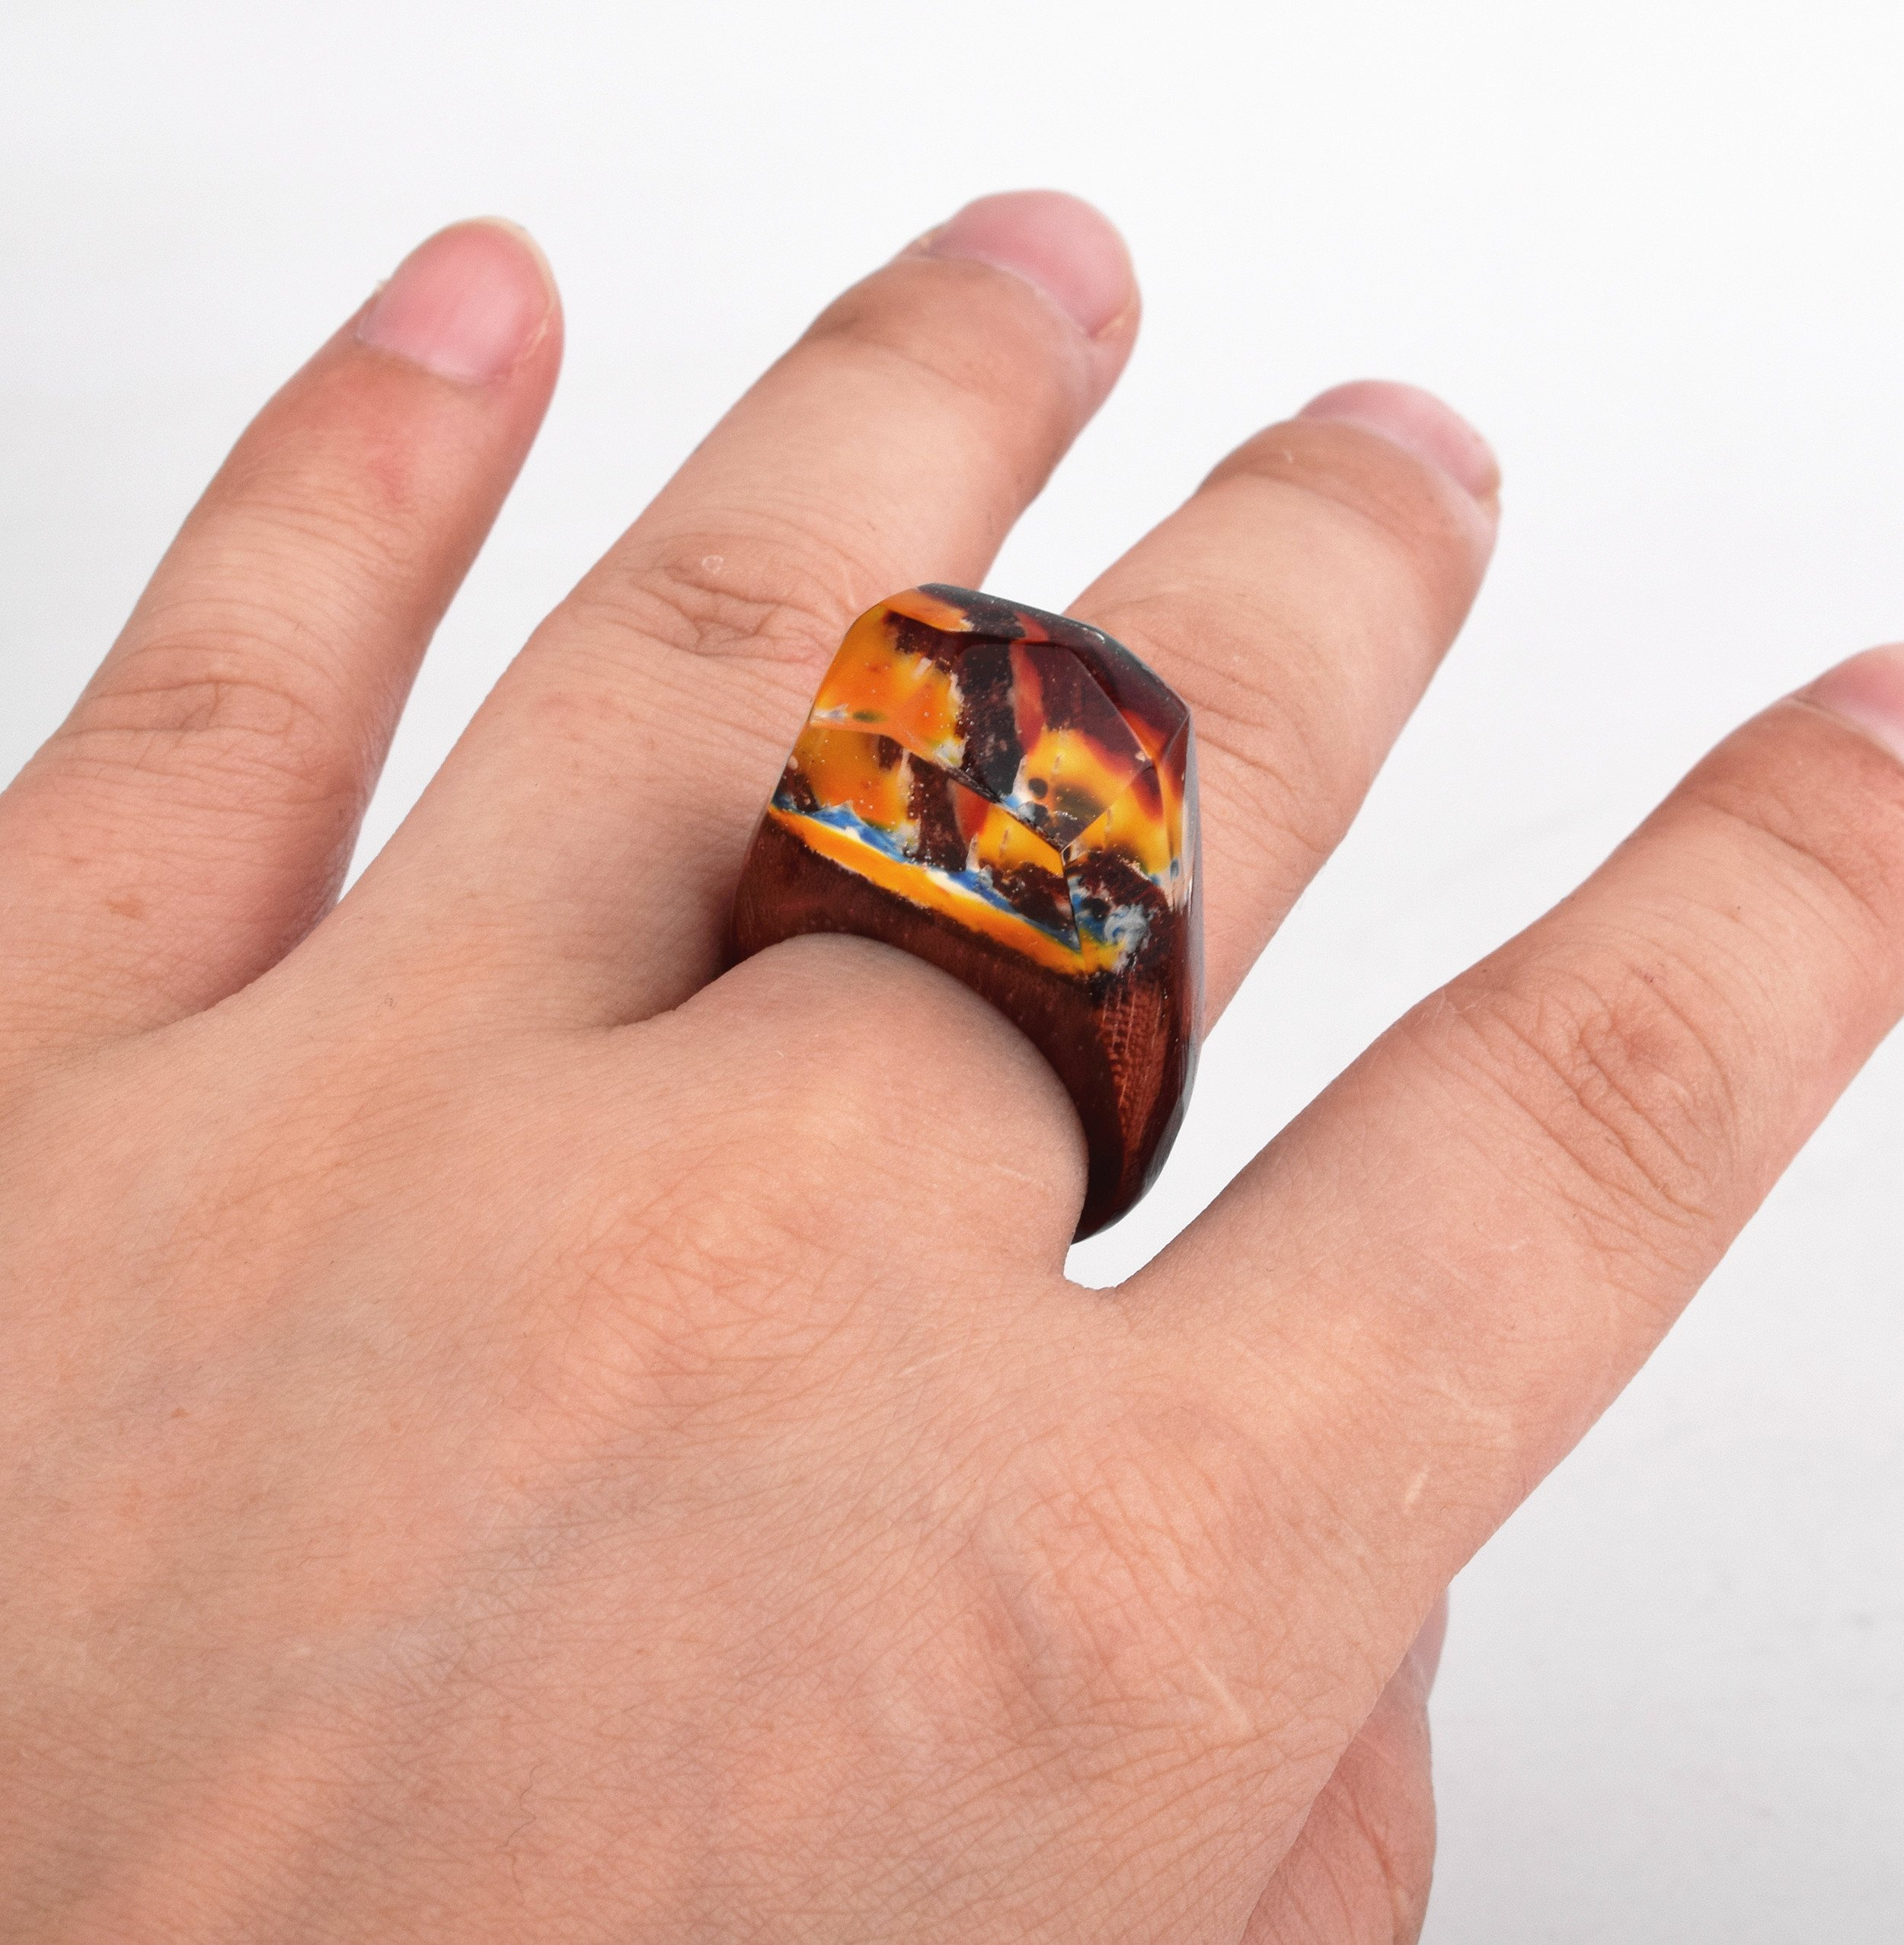 Heyou Love Handmade Wood Resin Ring With Volcano Scenery Landscape Inside Jewelry by Heyou Love (Image #7)